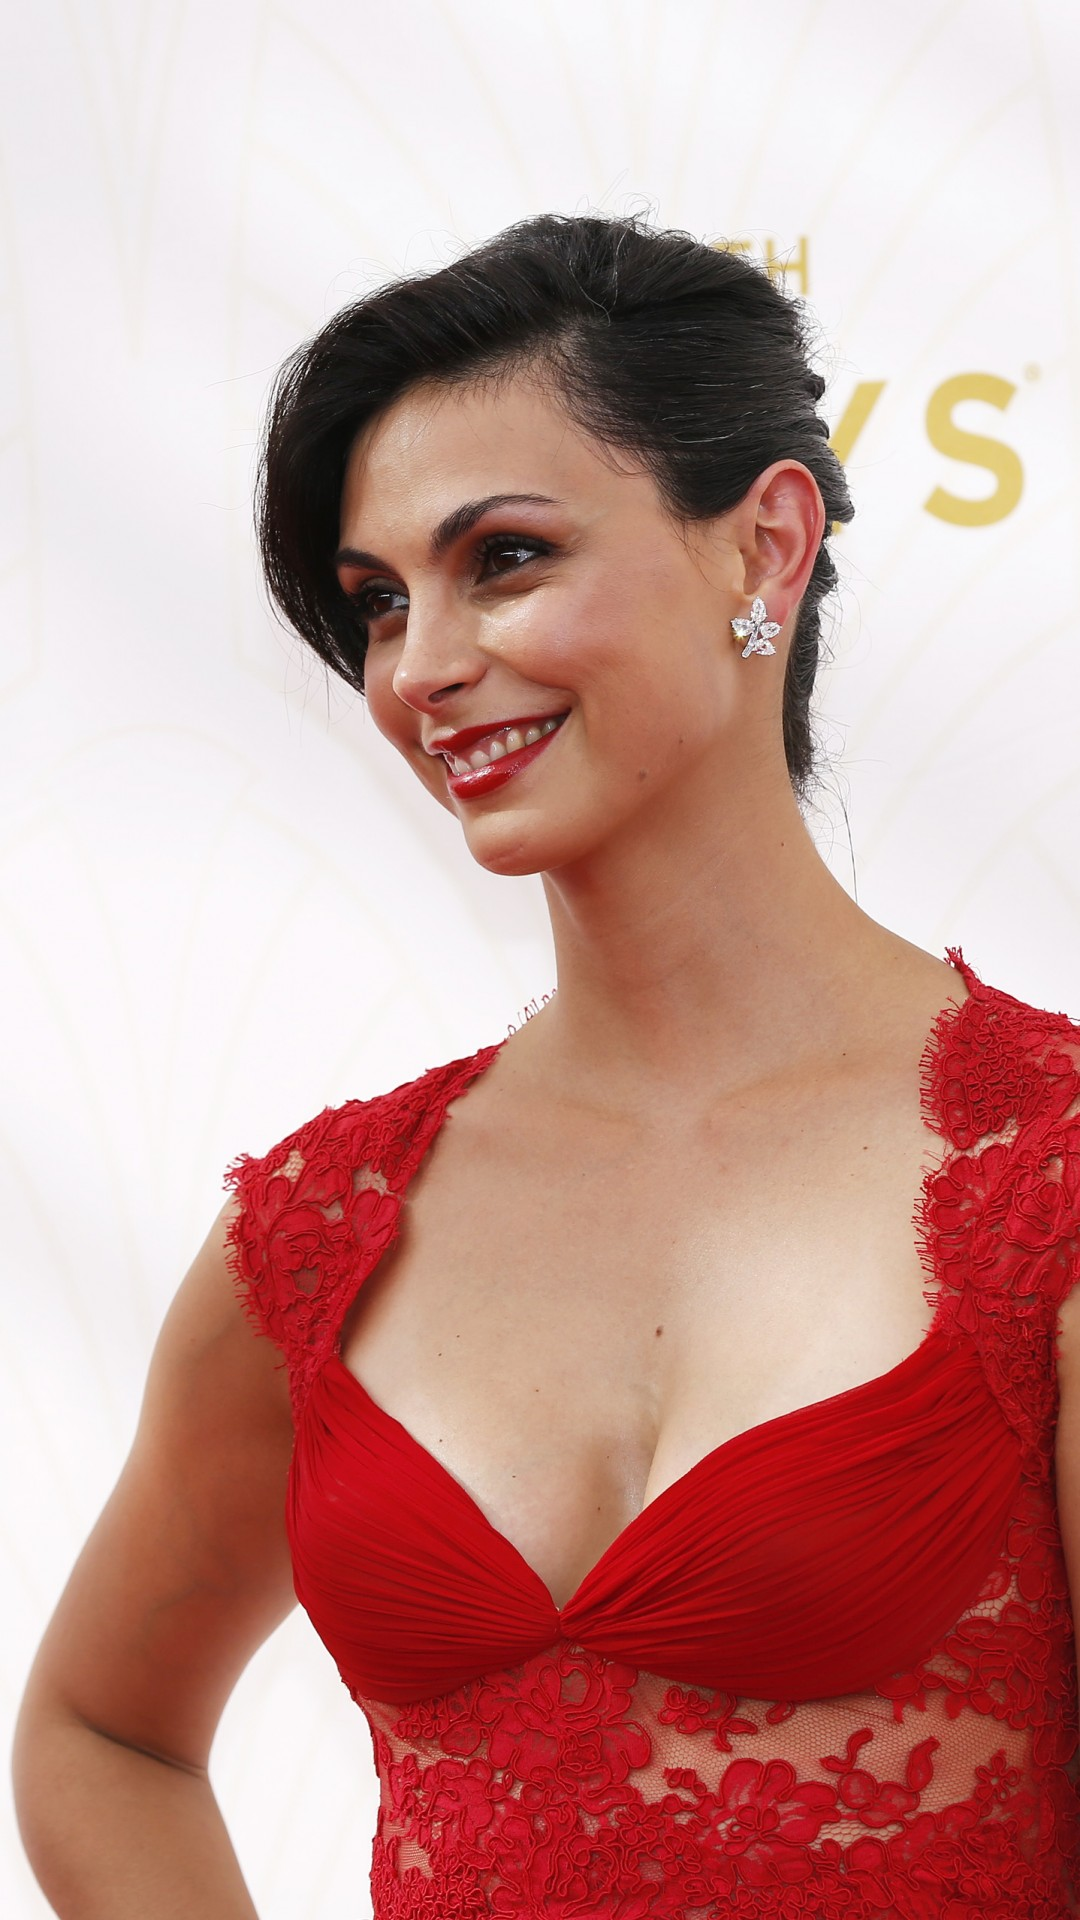 Animated Dragon Wallpaper Wallpaper Morena Baccarin 4k Photo Celebrities 13740